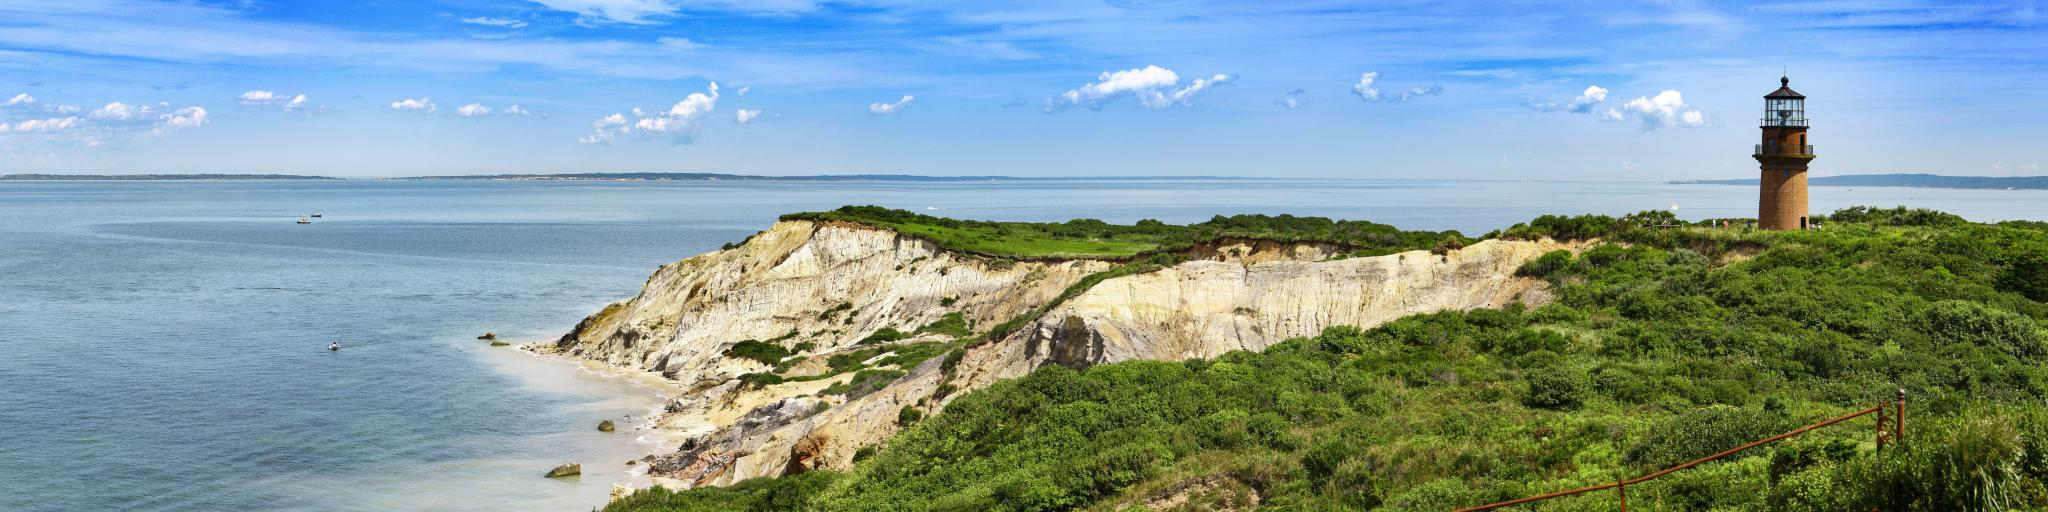 A panoramic view of the Coastal Lighthouse on a green grassy cliff with a mirroring sky and sea of blue with fluffy cotton-like clouds in Aquinnah, Martha's Vineyard